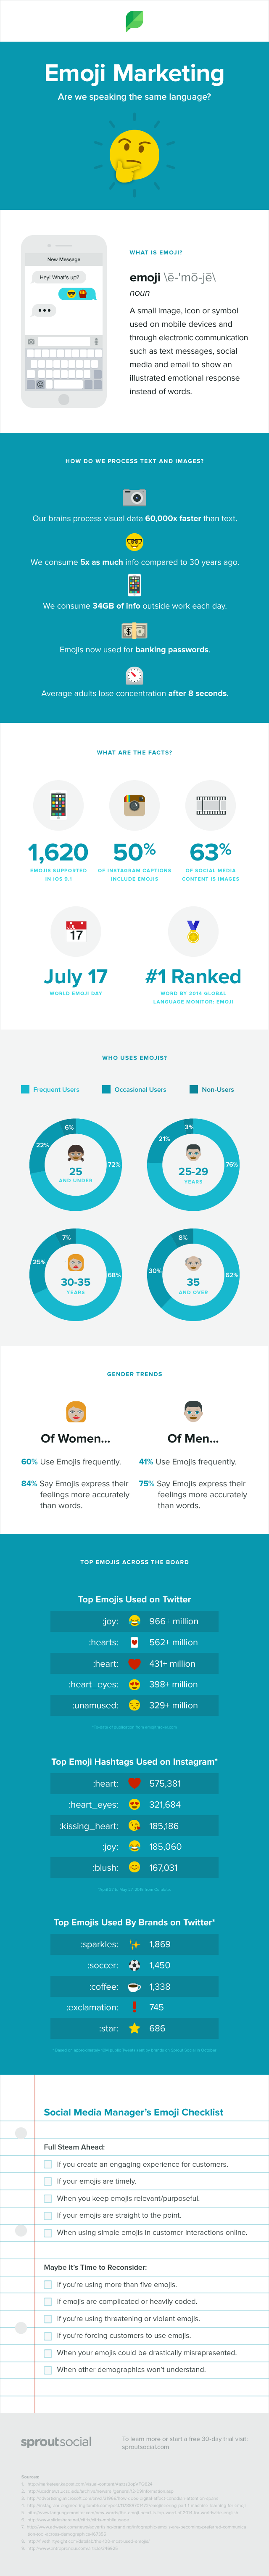 infographie emoji marketing